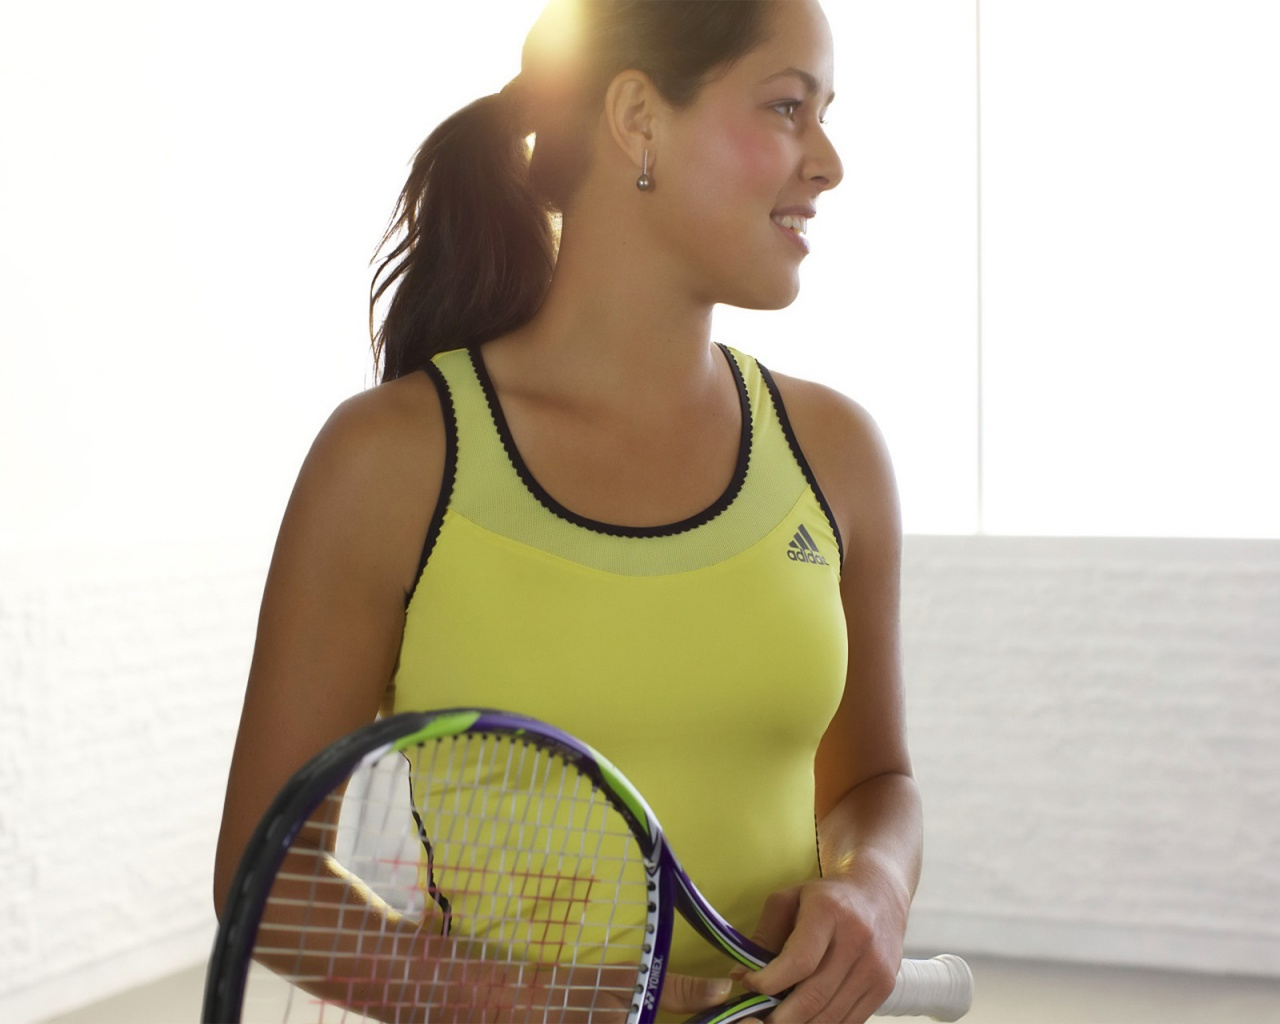 Ana Ivanovic 7 #4190354, 1600x1200 | All For Desktop